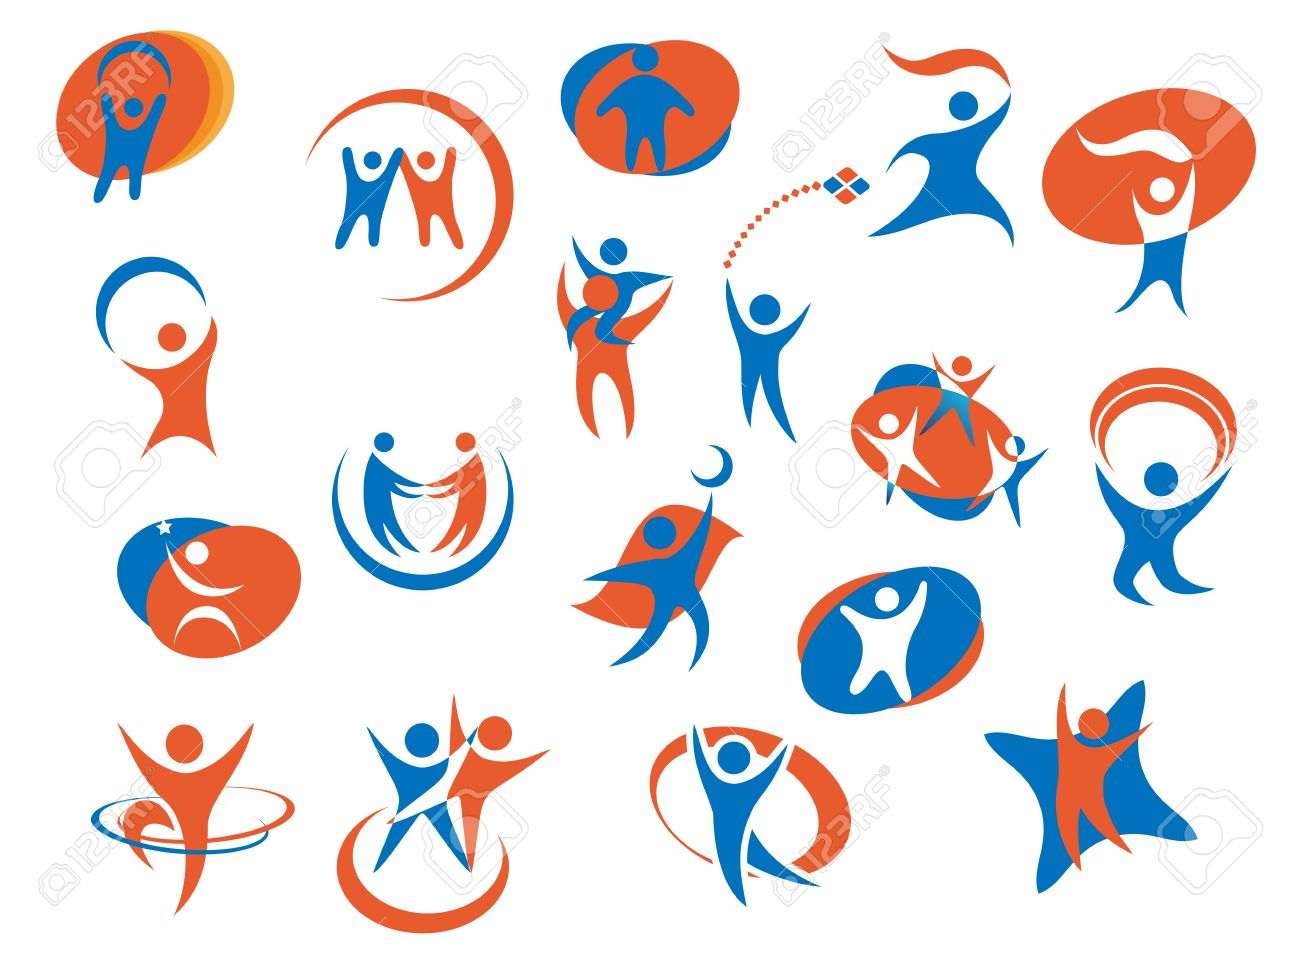 Abstract People Silhouette Icons Or Logo Templates In Blue And ...